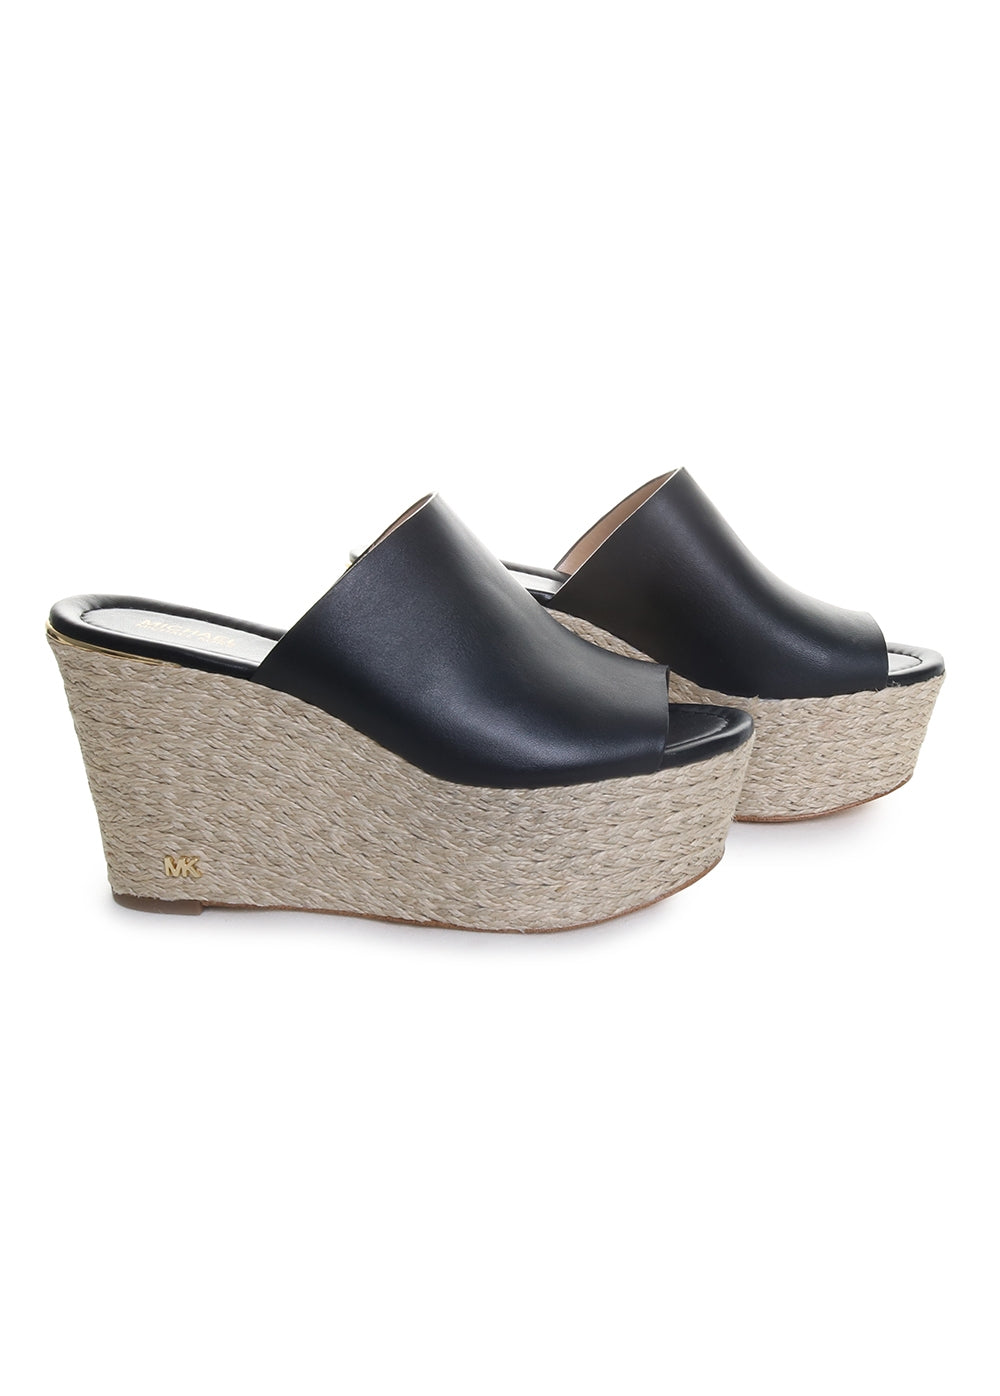 Cunningham Leather Woven Open Toe Wedges